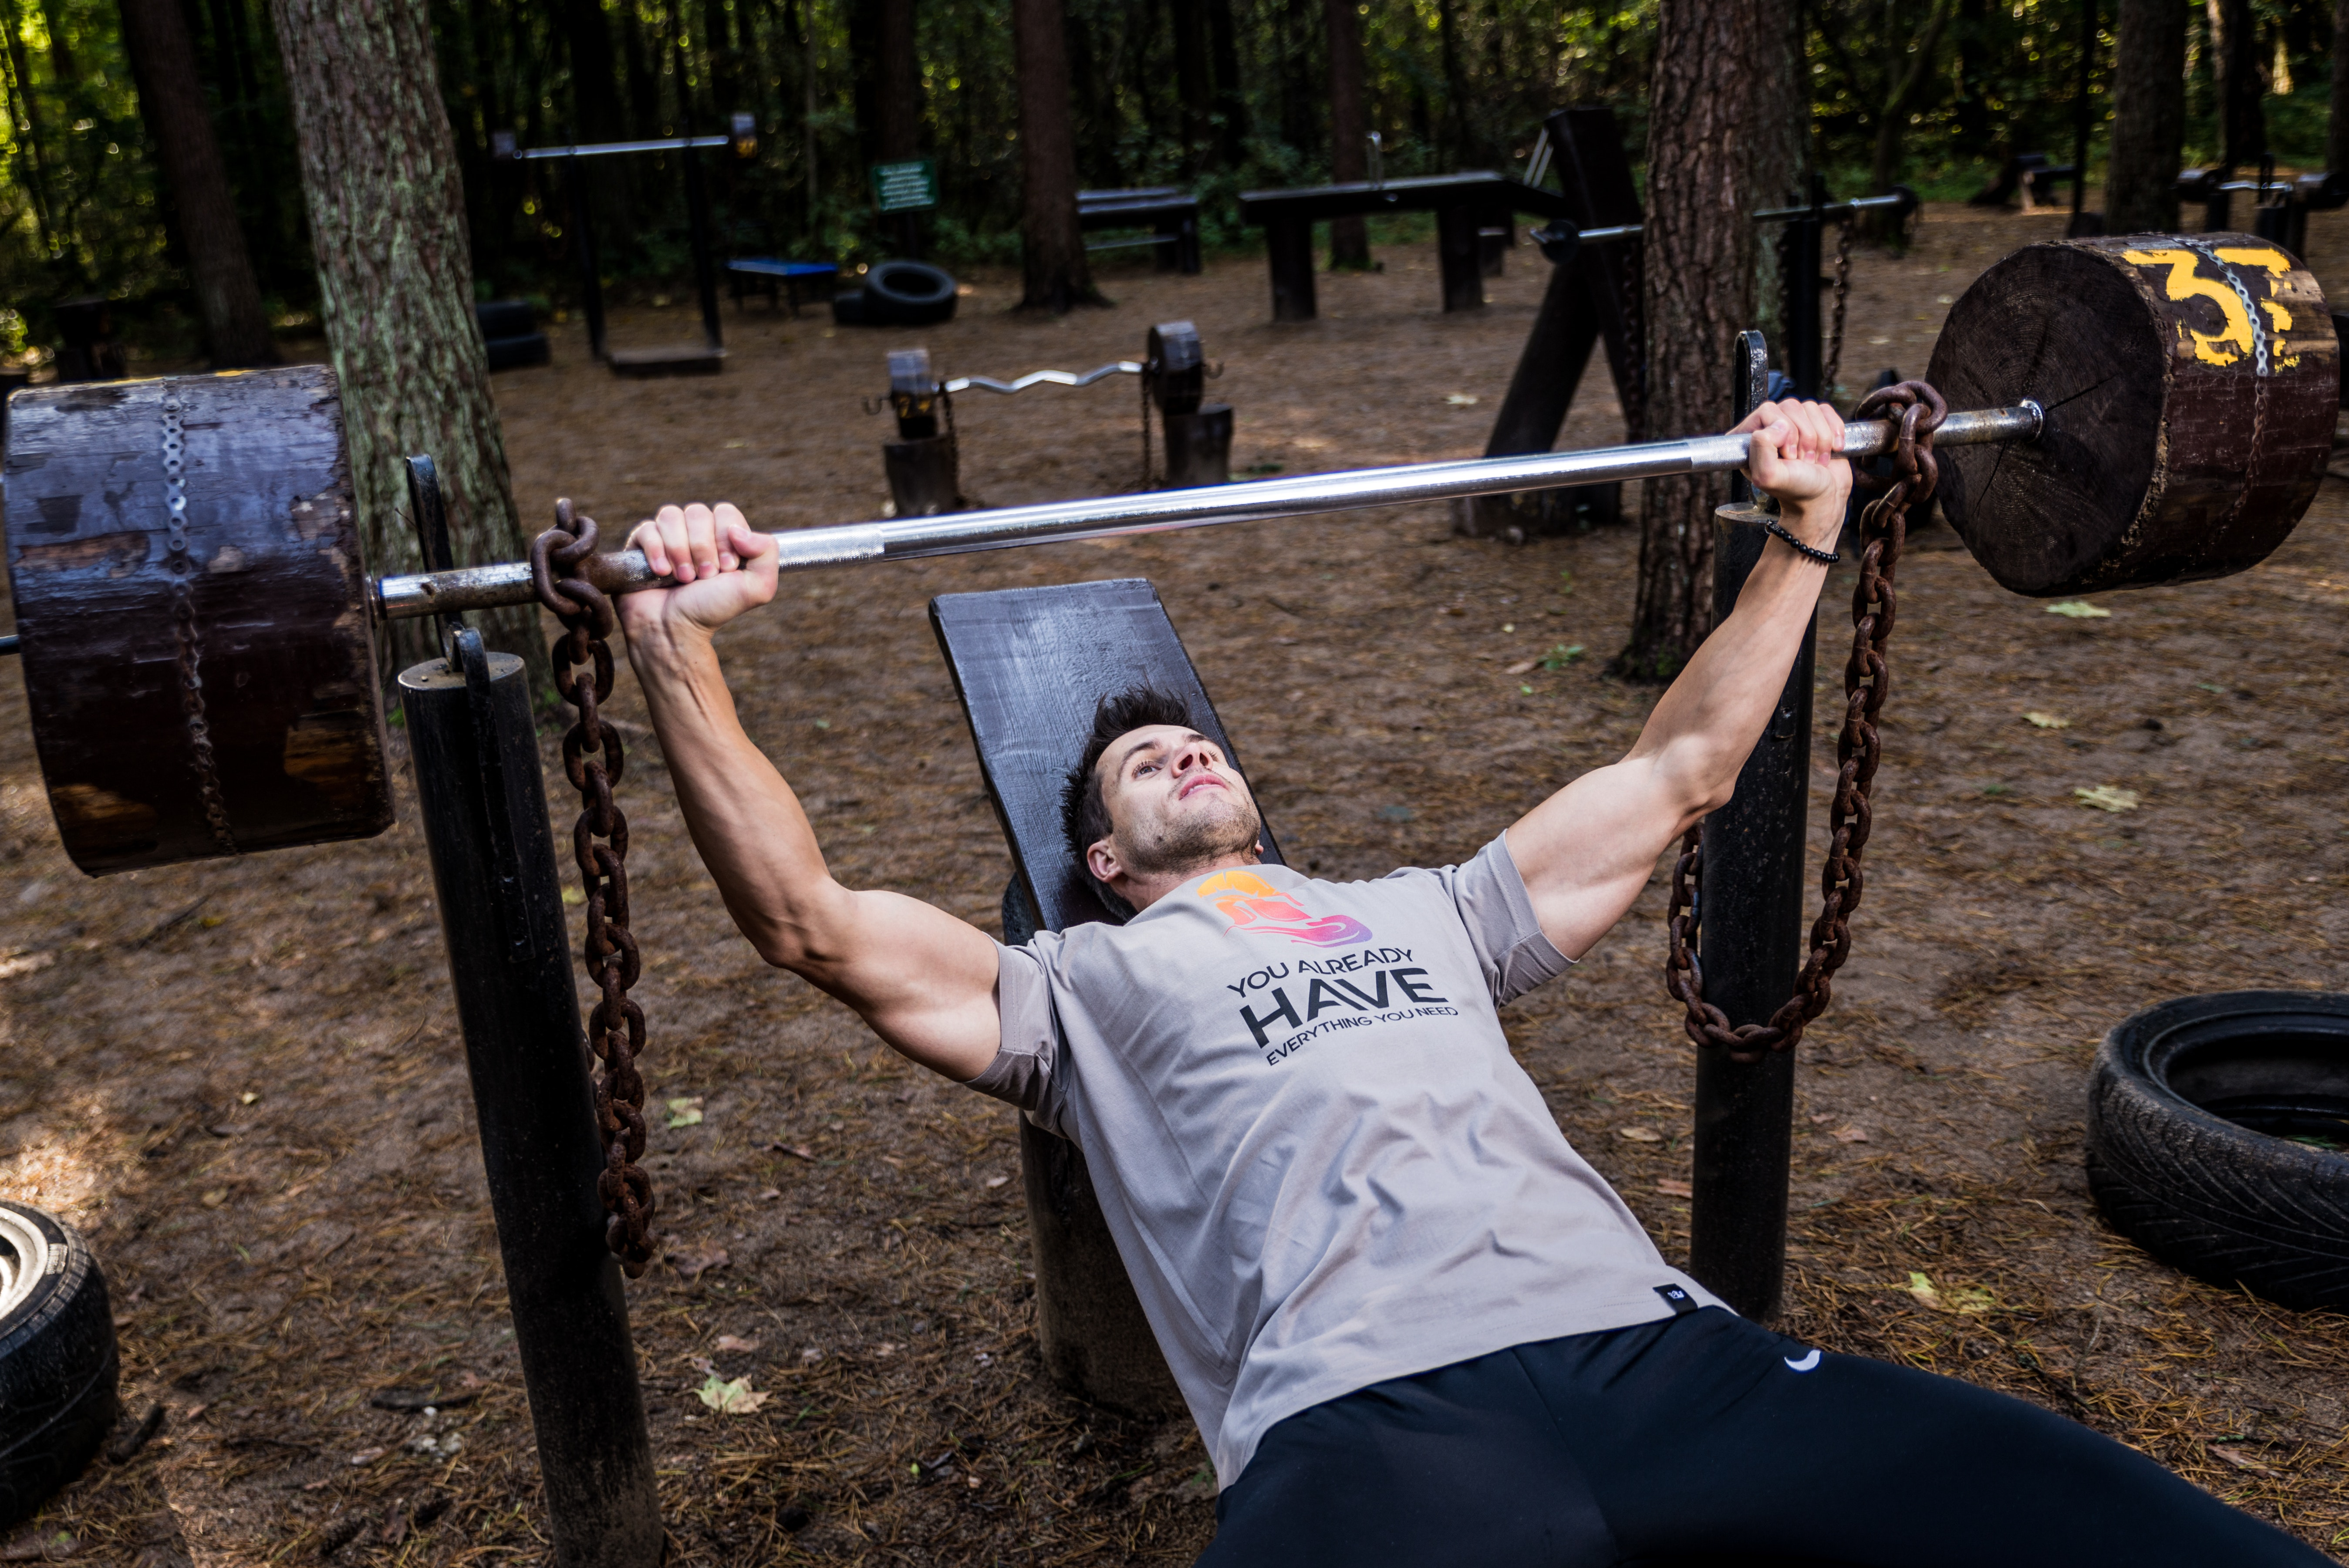 Man in Grey Shirt and Black Bottom Lifting Barbell, Action, Athlete, Barbell, Bench, HQ Photo